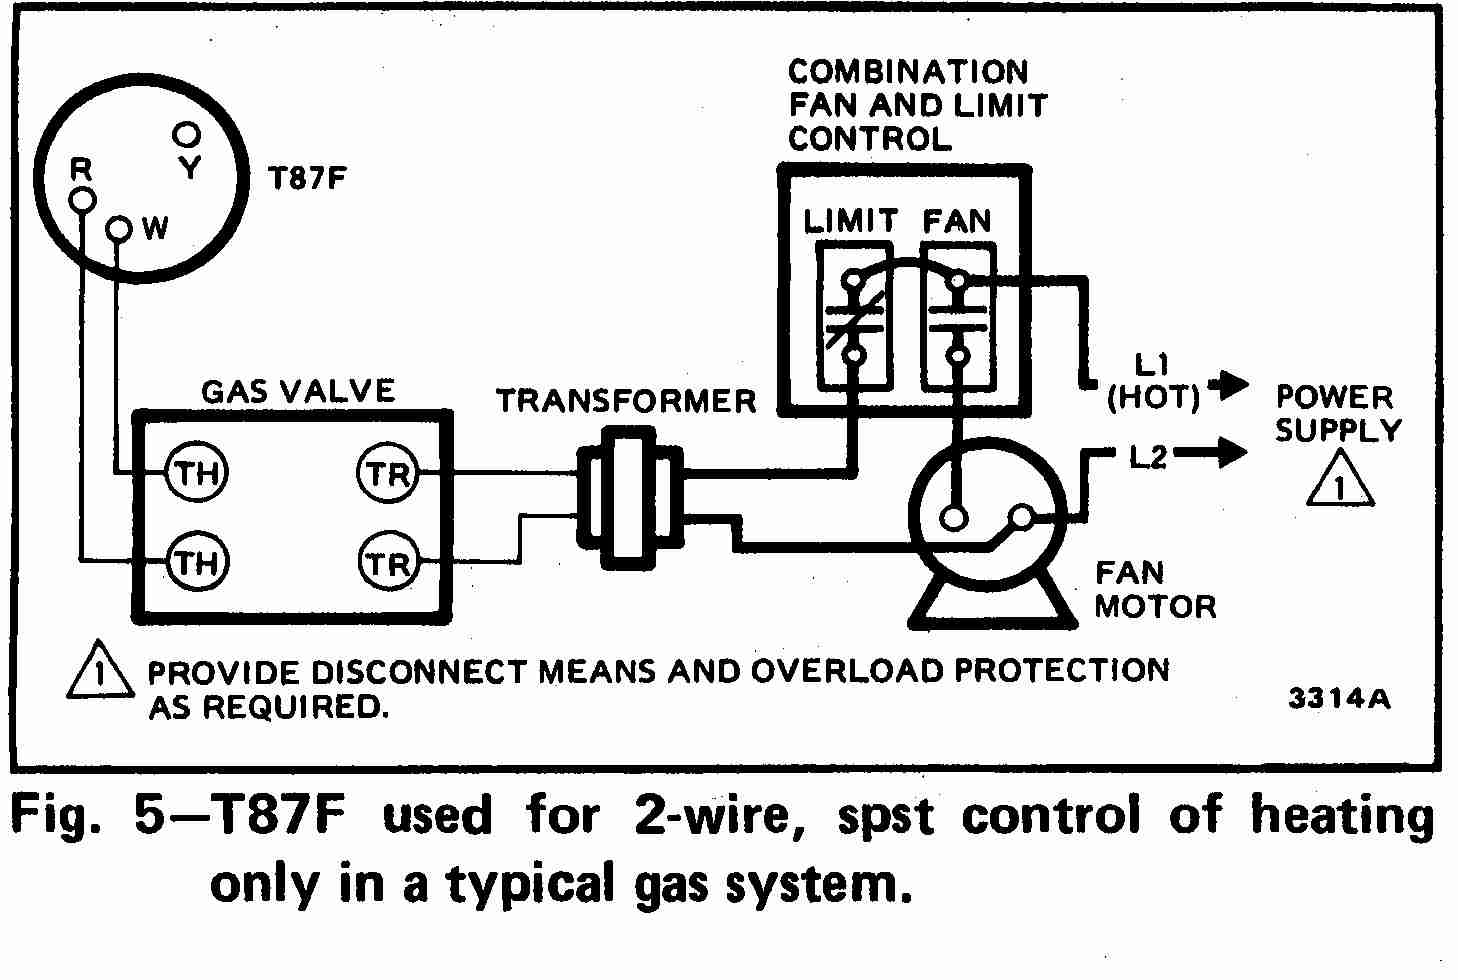 TT_T87F_0002_2Wg_DJF room thermostat wiring diagrams for hvac systems house thermostat wiring diagrams at soozxer.org